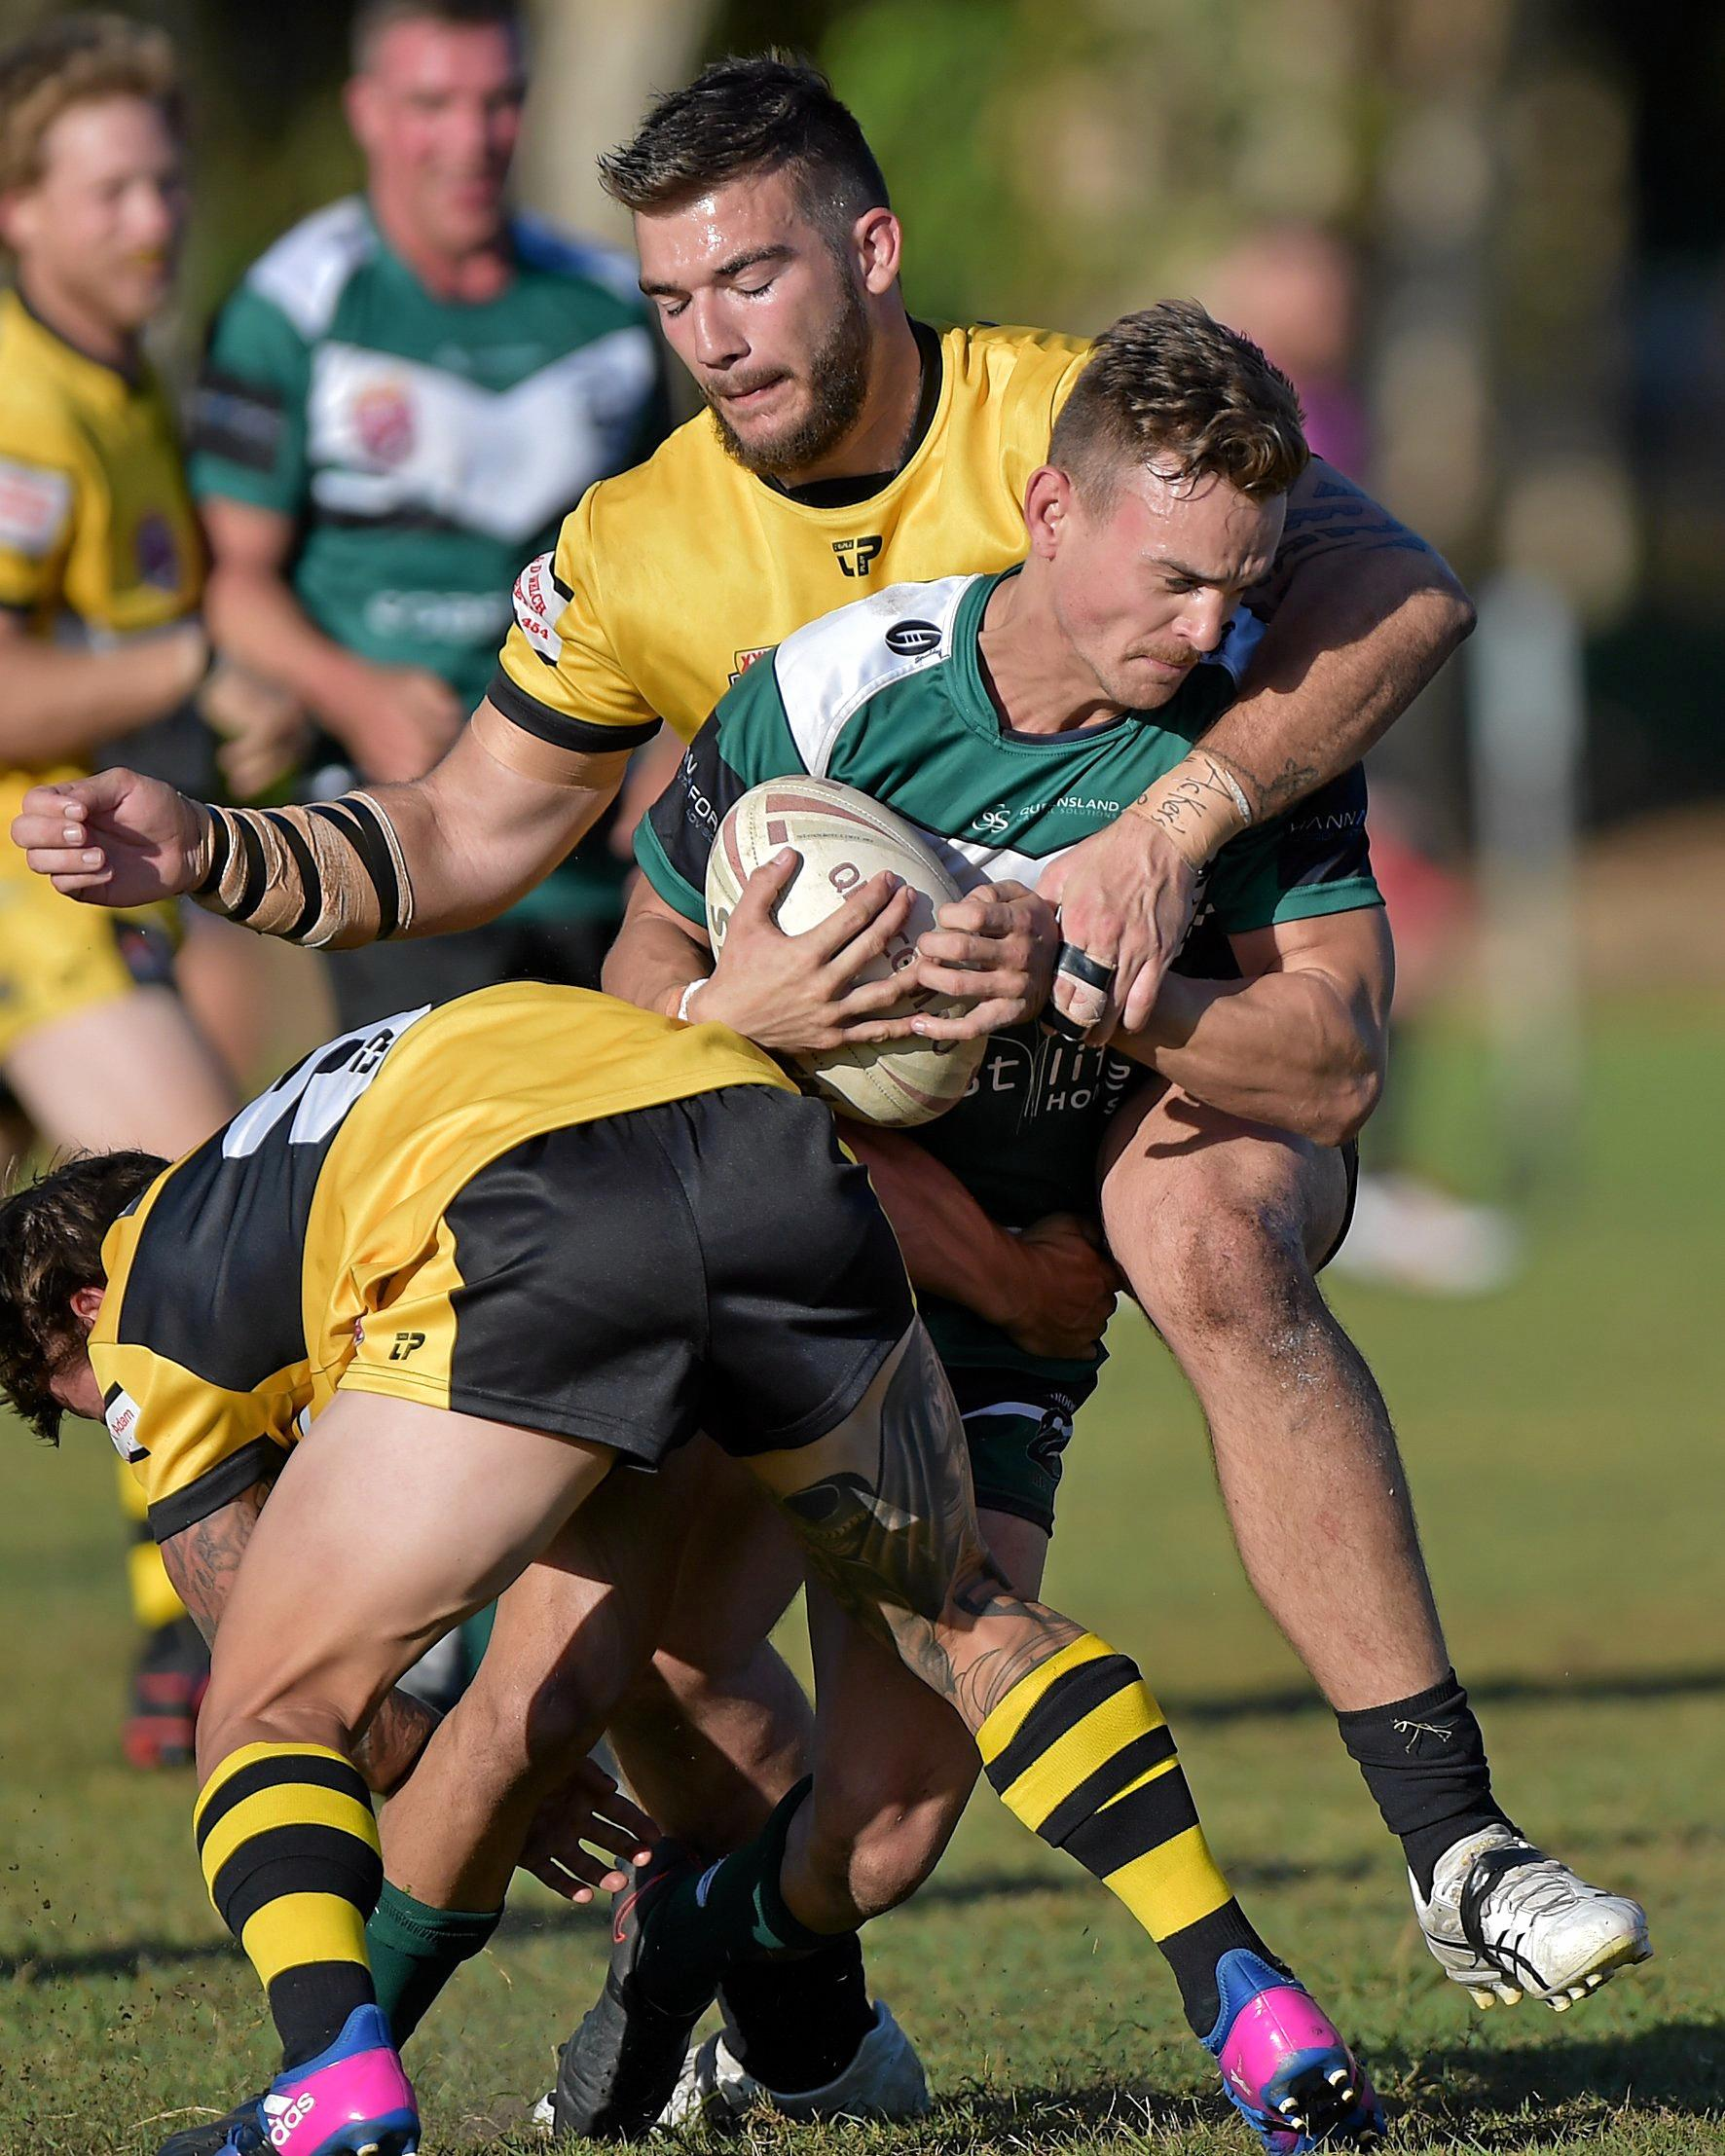 Caloundra against Maroochydore rugby league match.Maroochydore fullback Brad Kent.